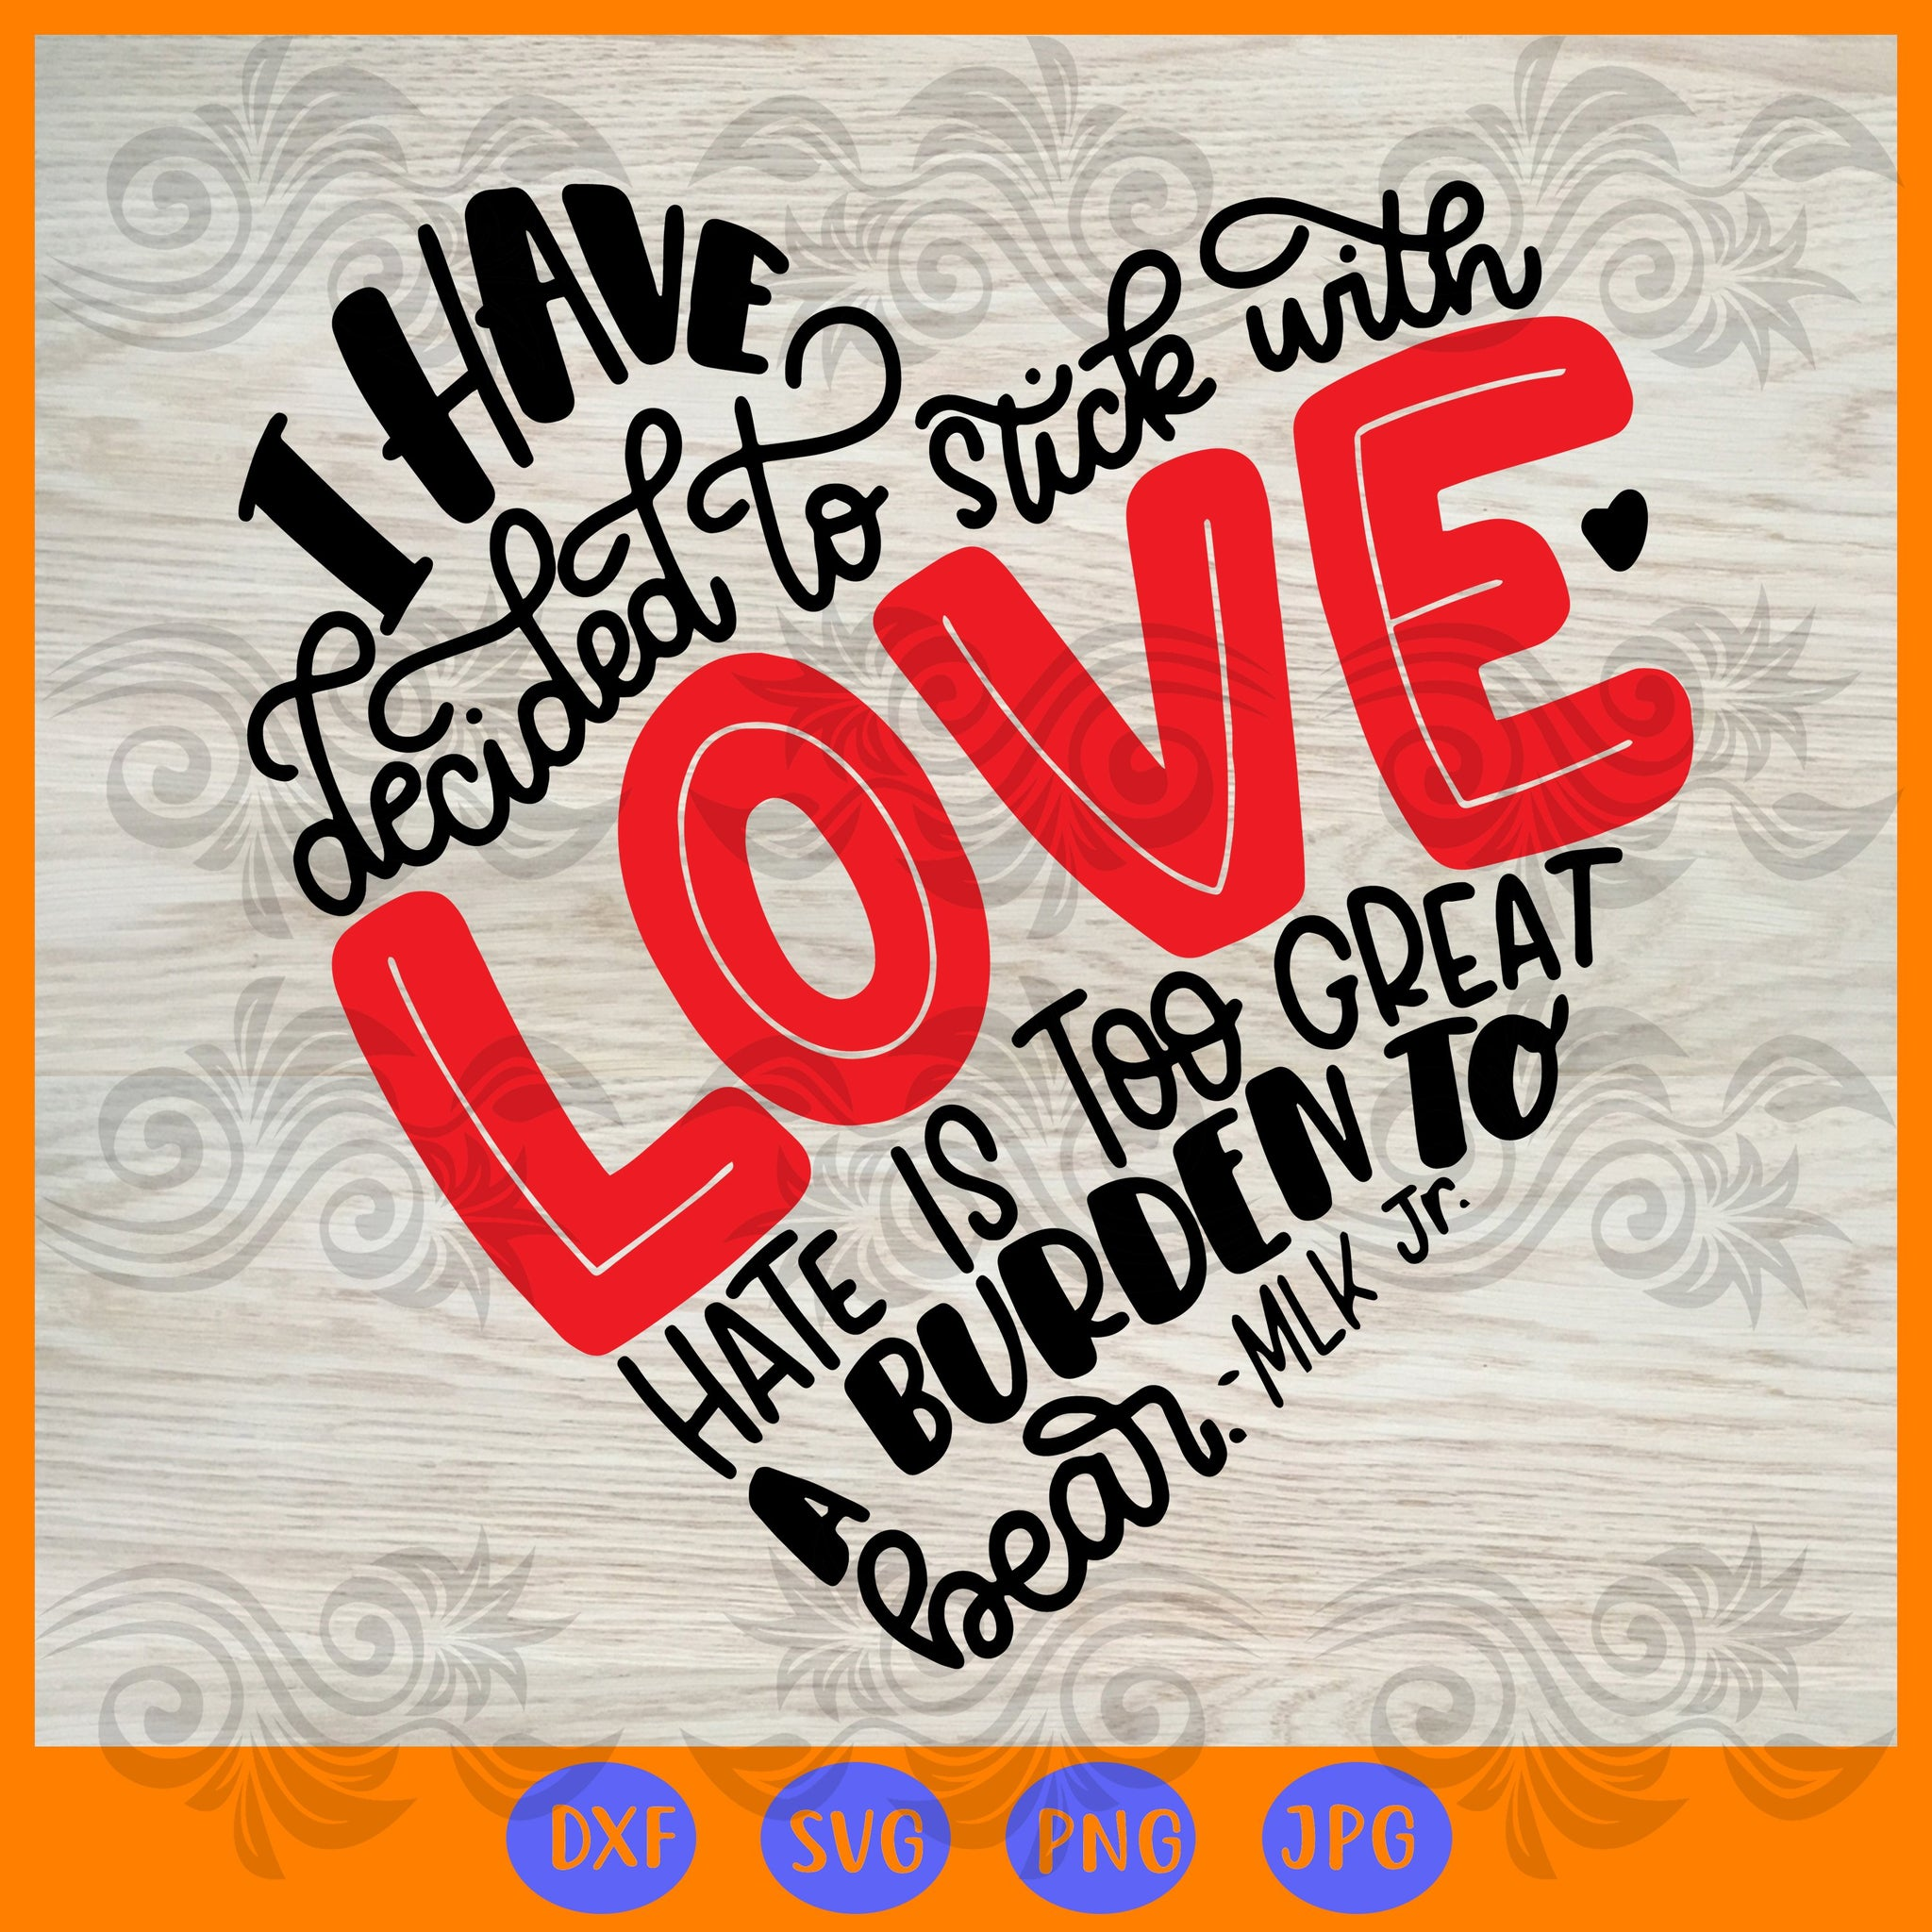 I have decided to stick with love hate it too great a burden to bear , MLK Jr, stick with love, black history svg, Martin Luther King, i have a dream, dr king,trending svg, Files For Silhouette, Files For Cricut, SVG, DXF, EPS, PNG, Instant Download